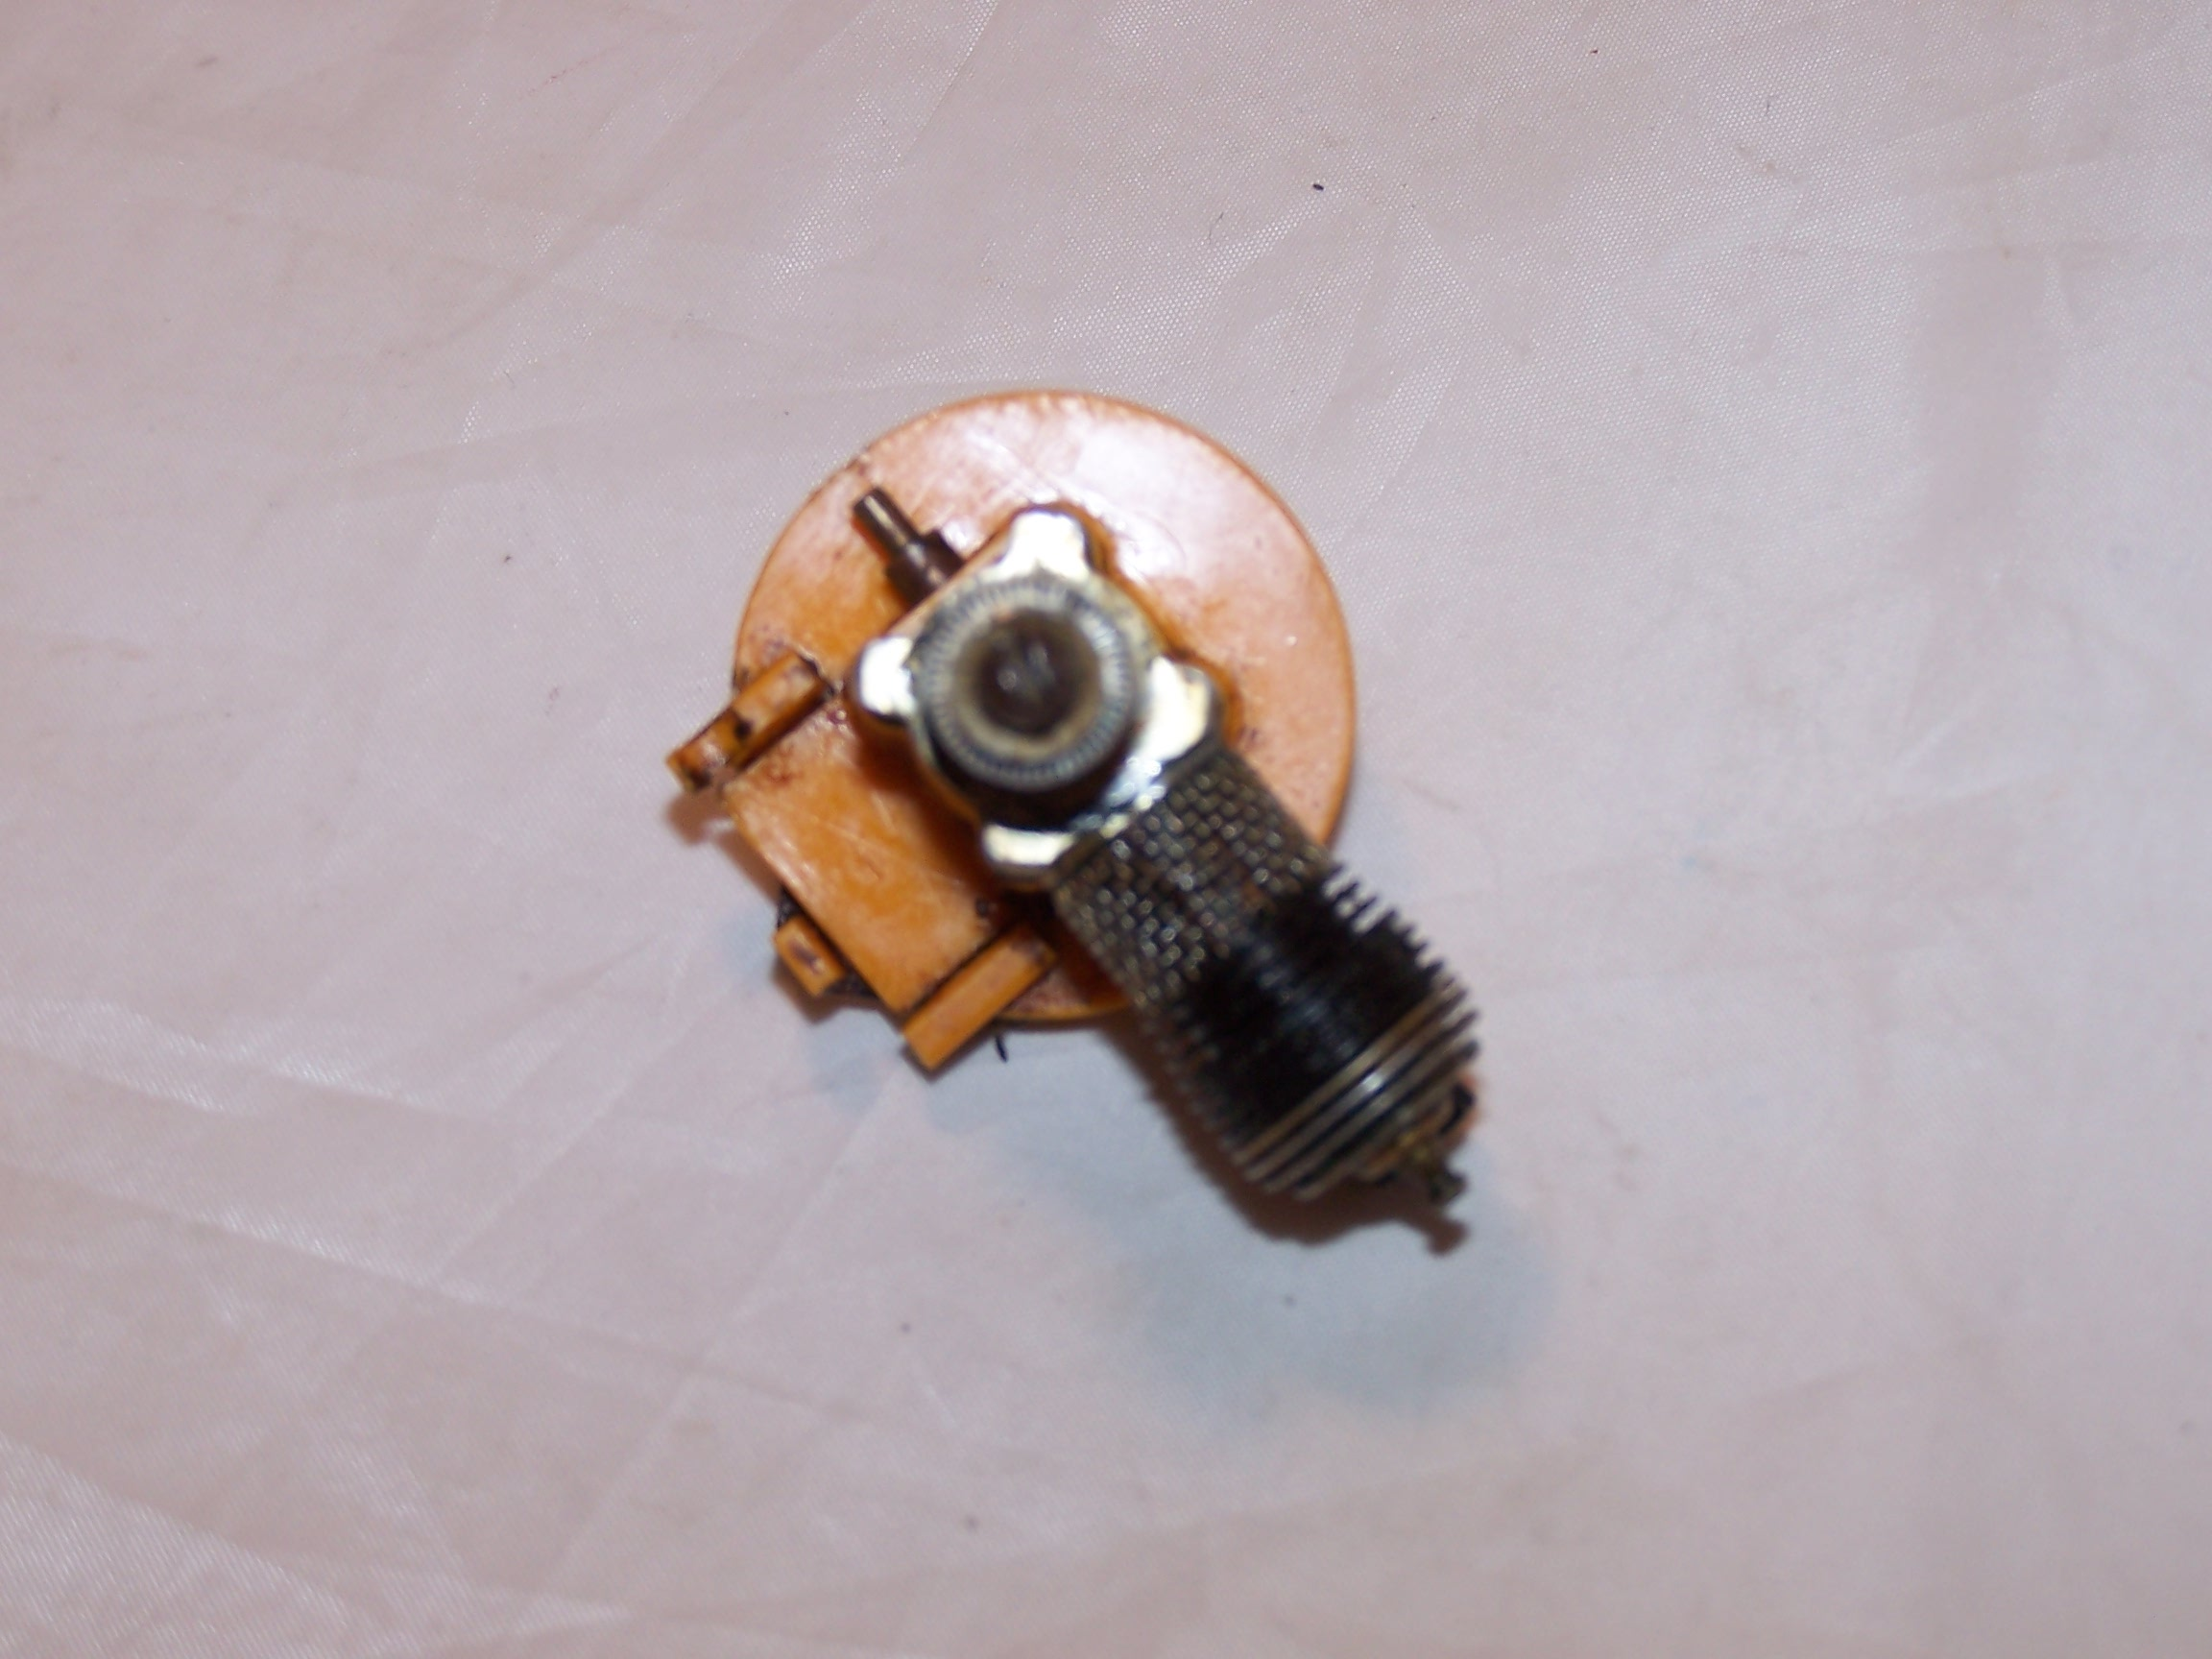 Image 2 of Radio Control RC Airplane Motor, Vintage